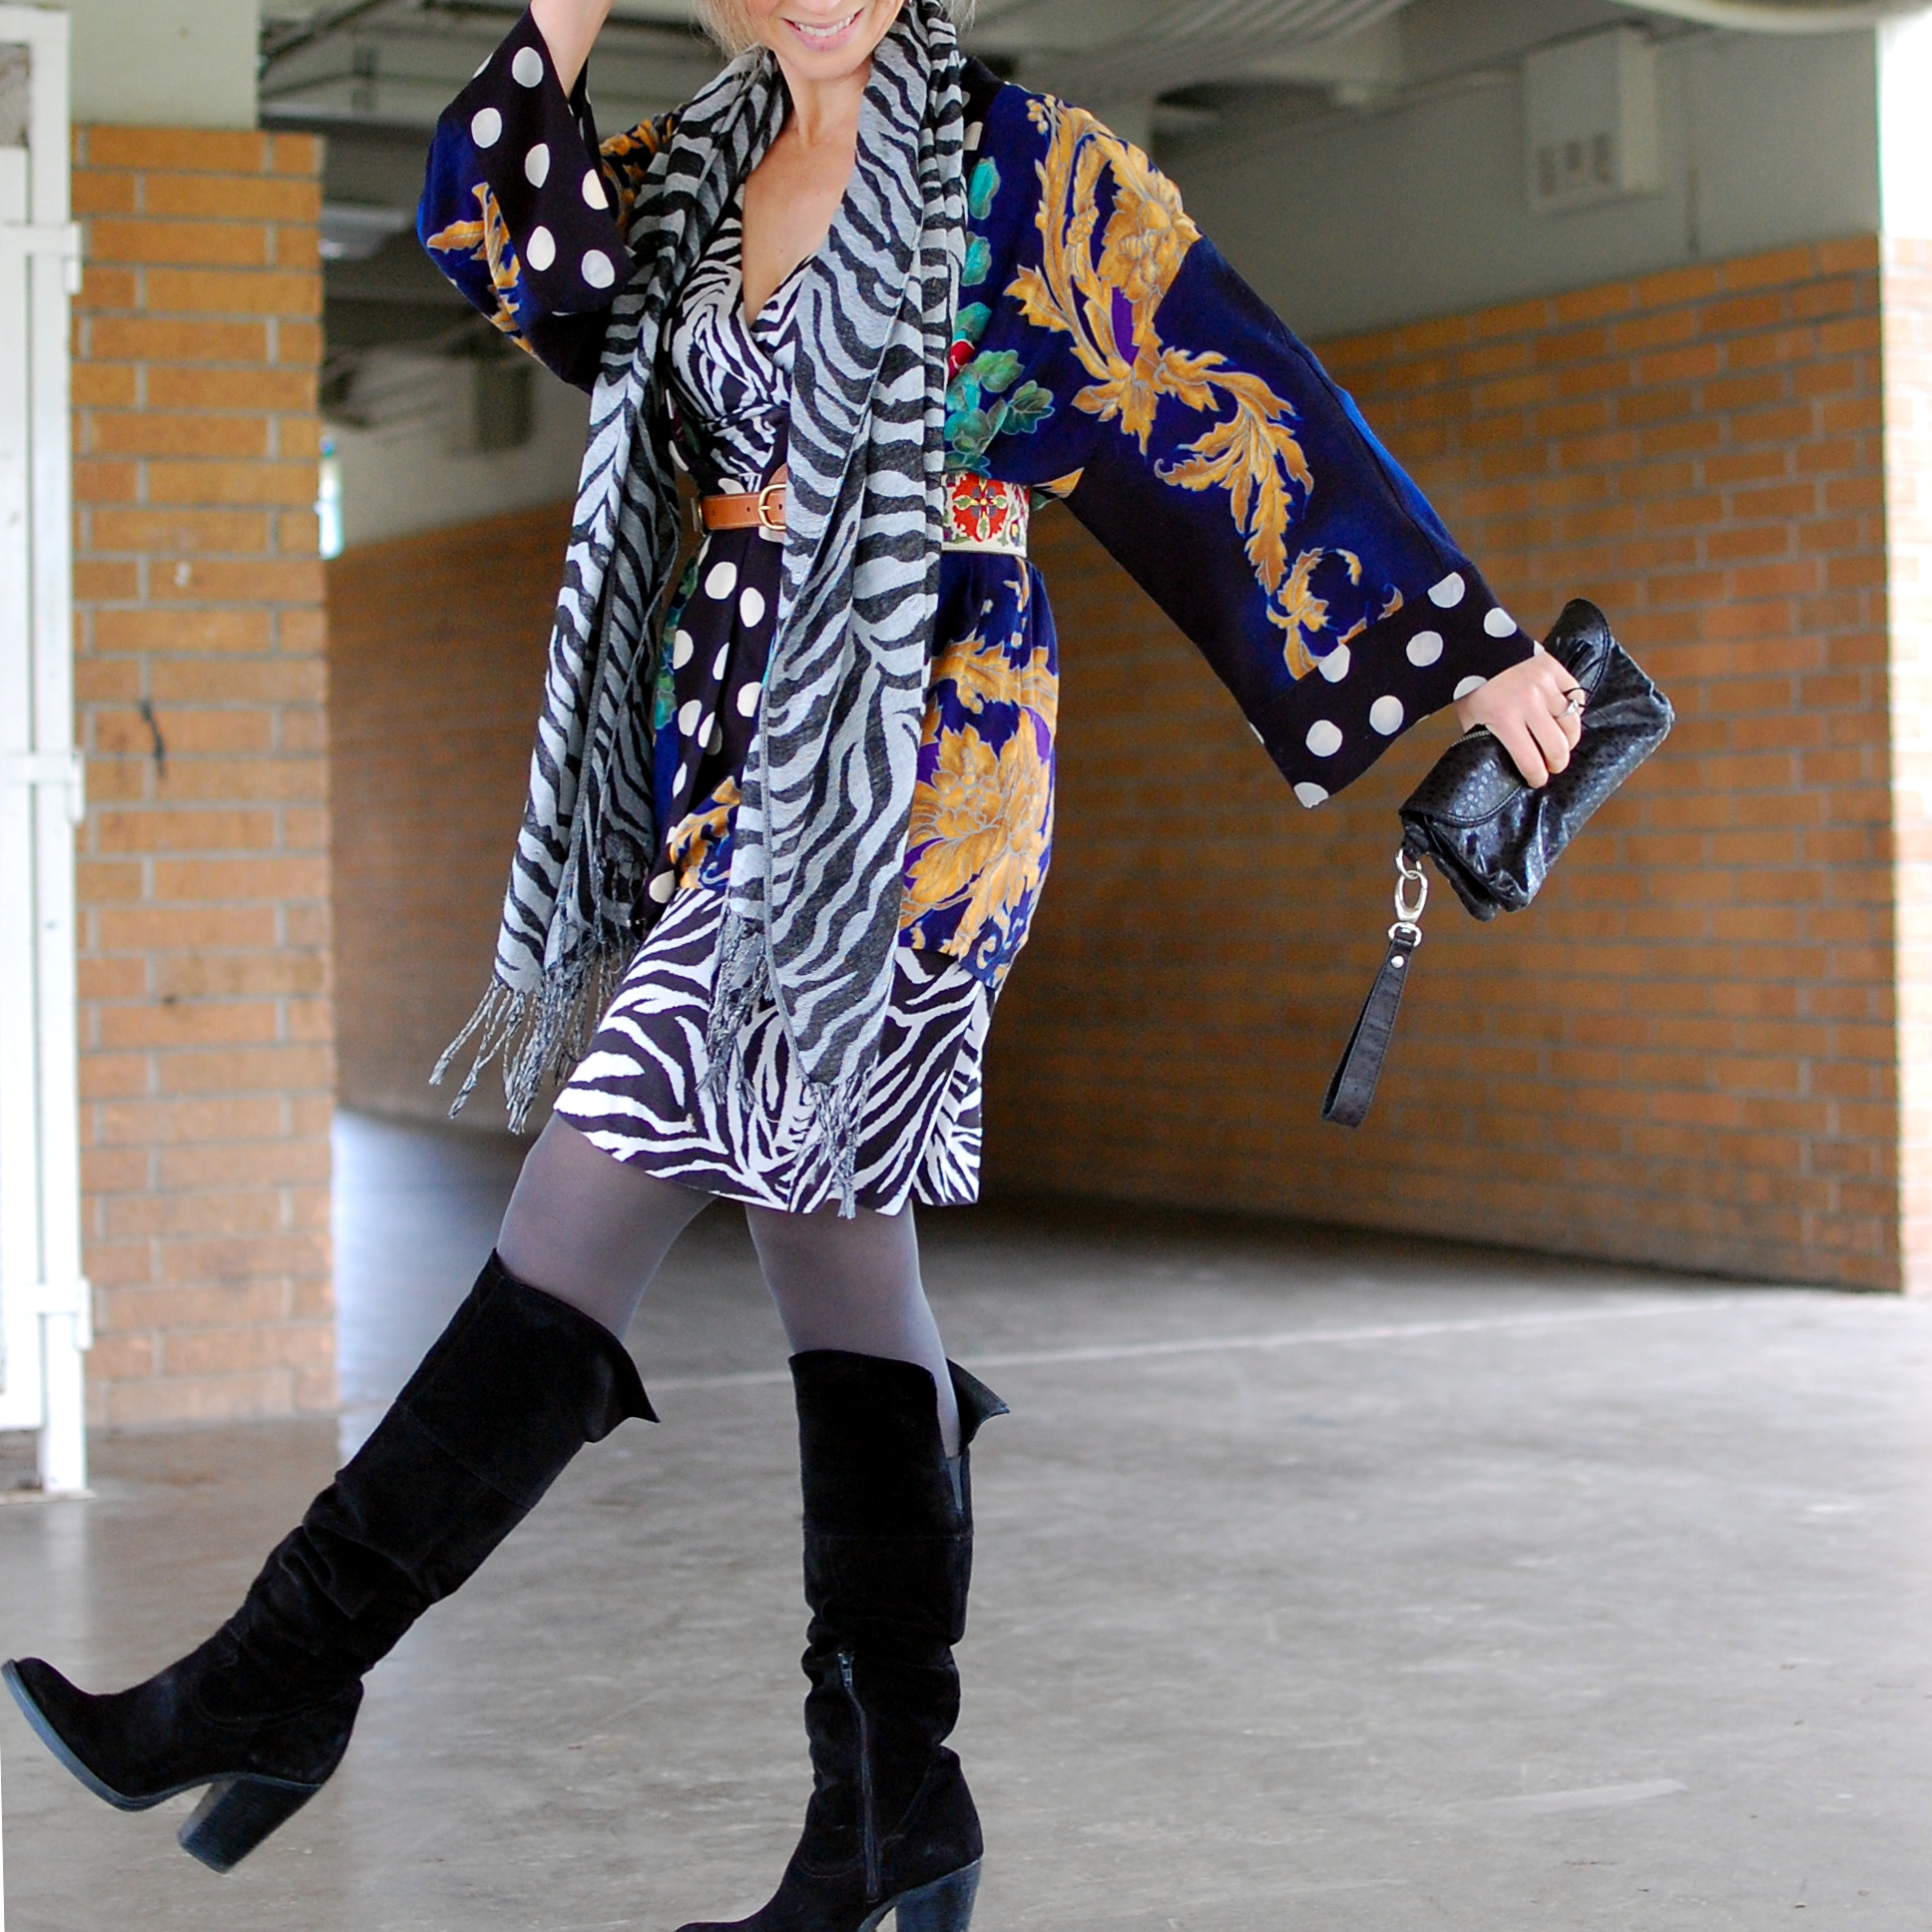 pattern mix zebra polka dot floral kimono ootd whatiwore2day business creative